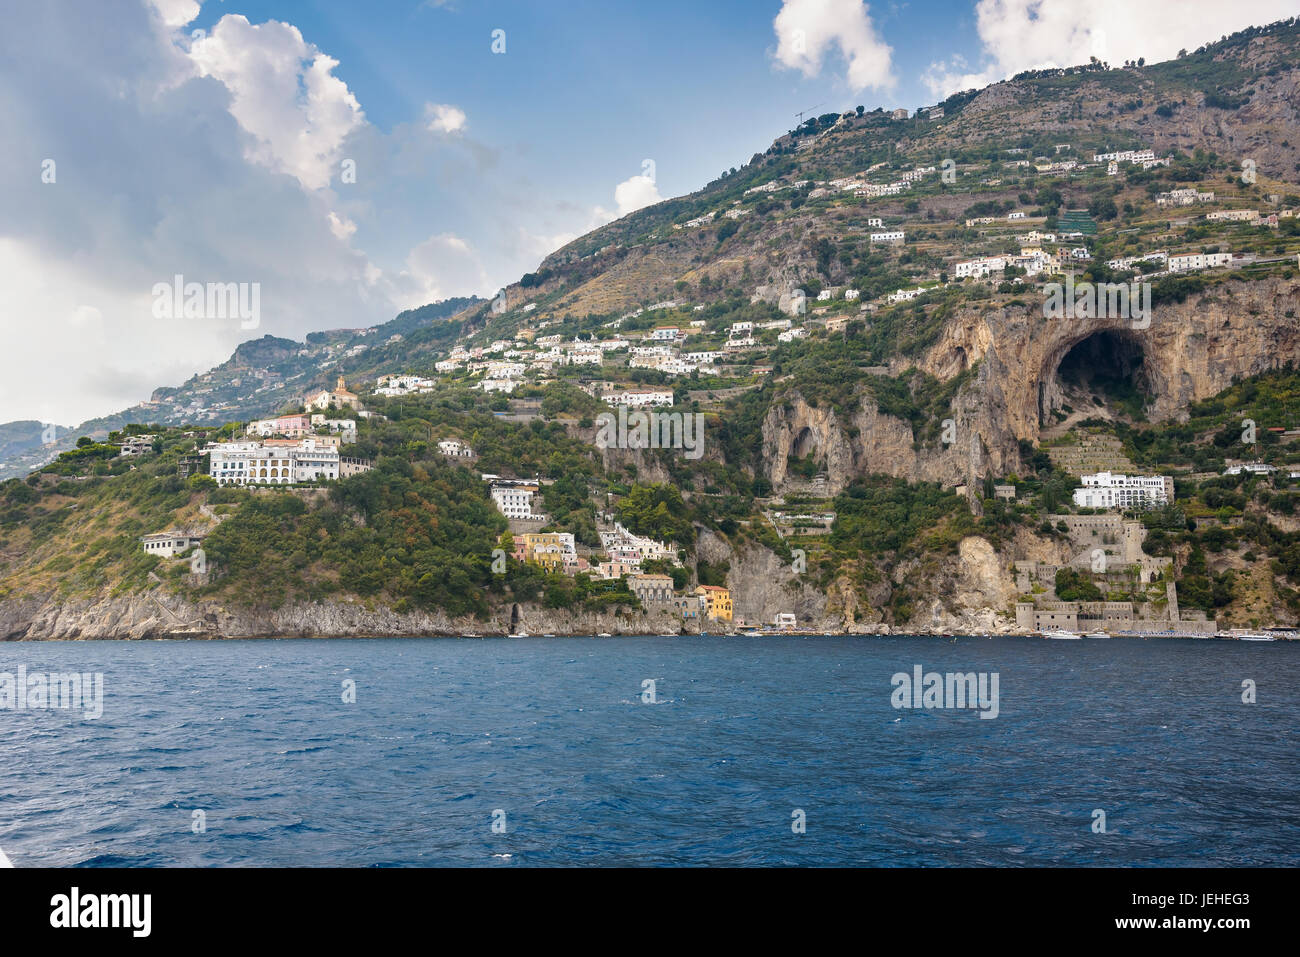 View of Conca dei Marini village on Amalfi coast seen from the sea, Campania, Italy - Stock Image